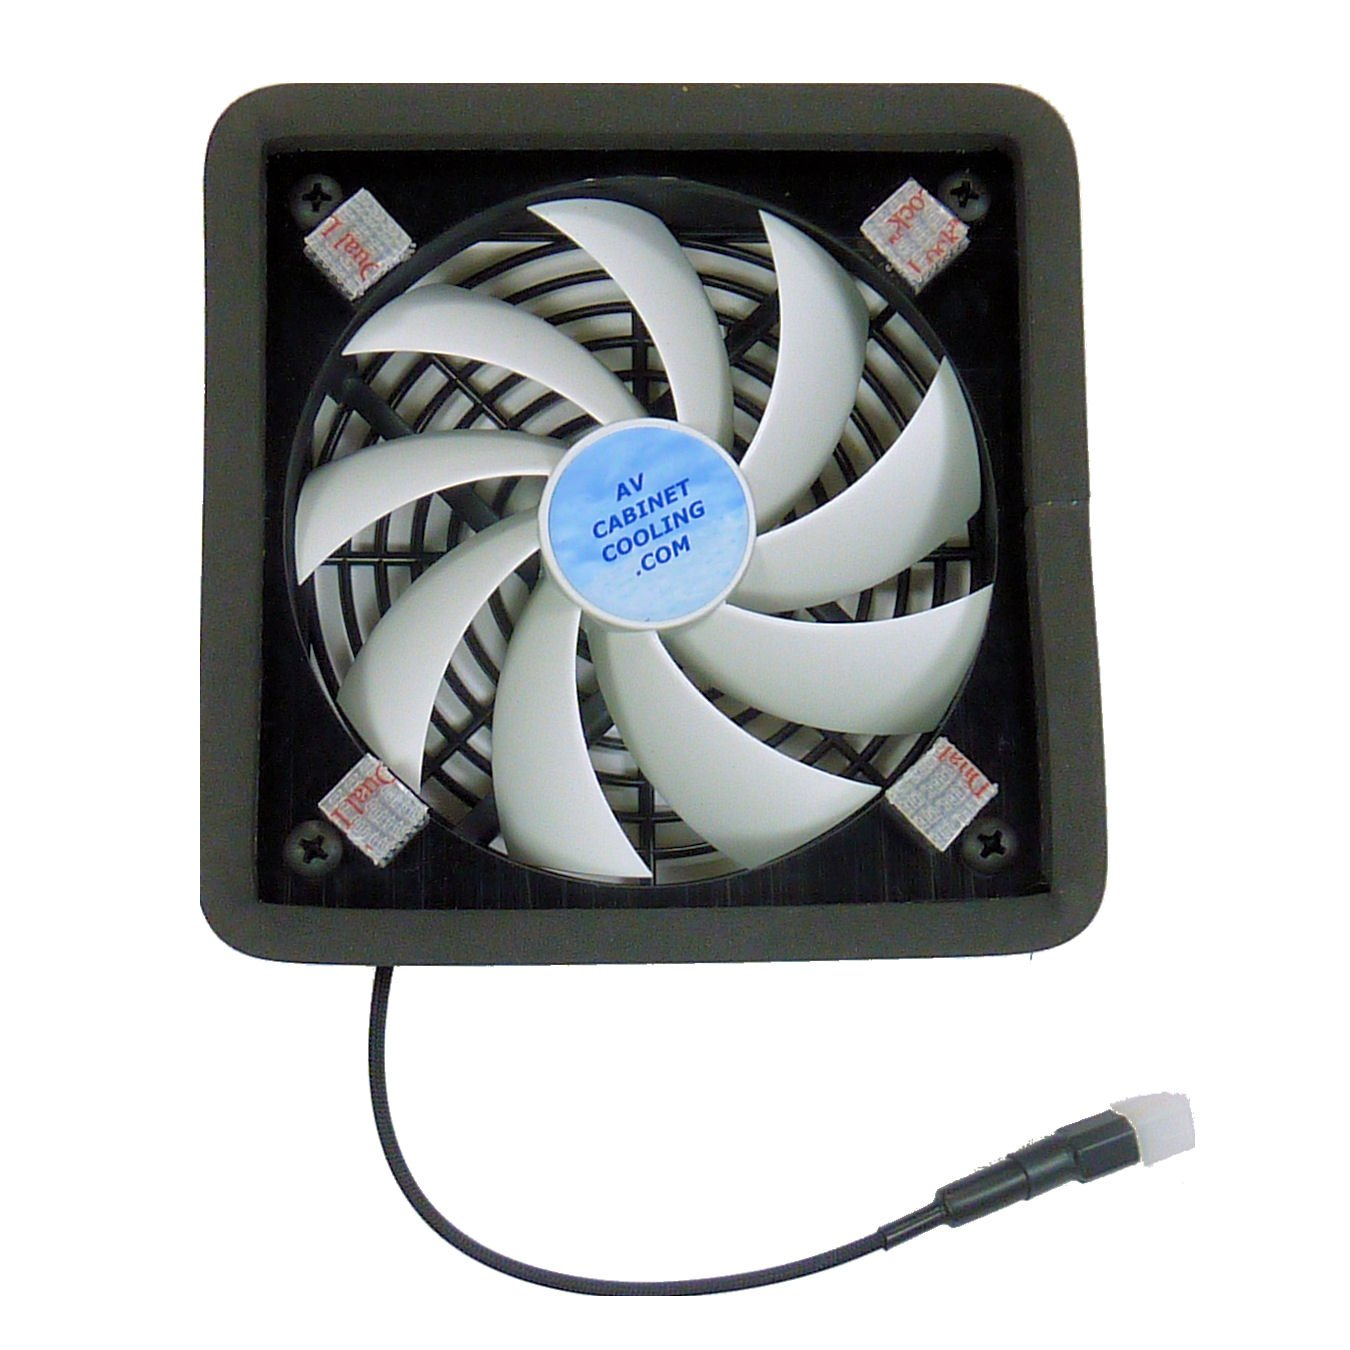 Plasma Lcd Tv Vertical Mount Cooling Fan System With 2005 Lg 50 Inch Screen Circuit Boards In Back Of Usb Control Multispeed Fans Electronics